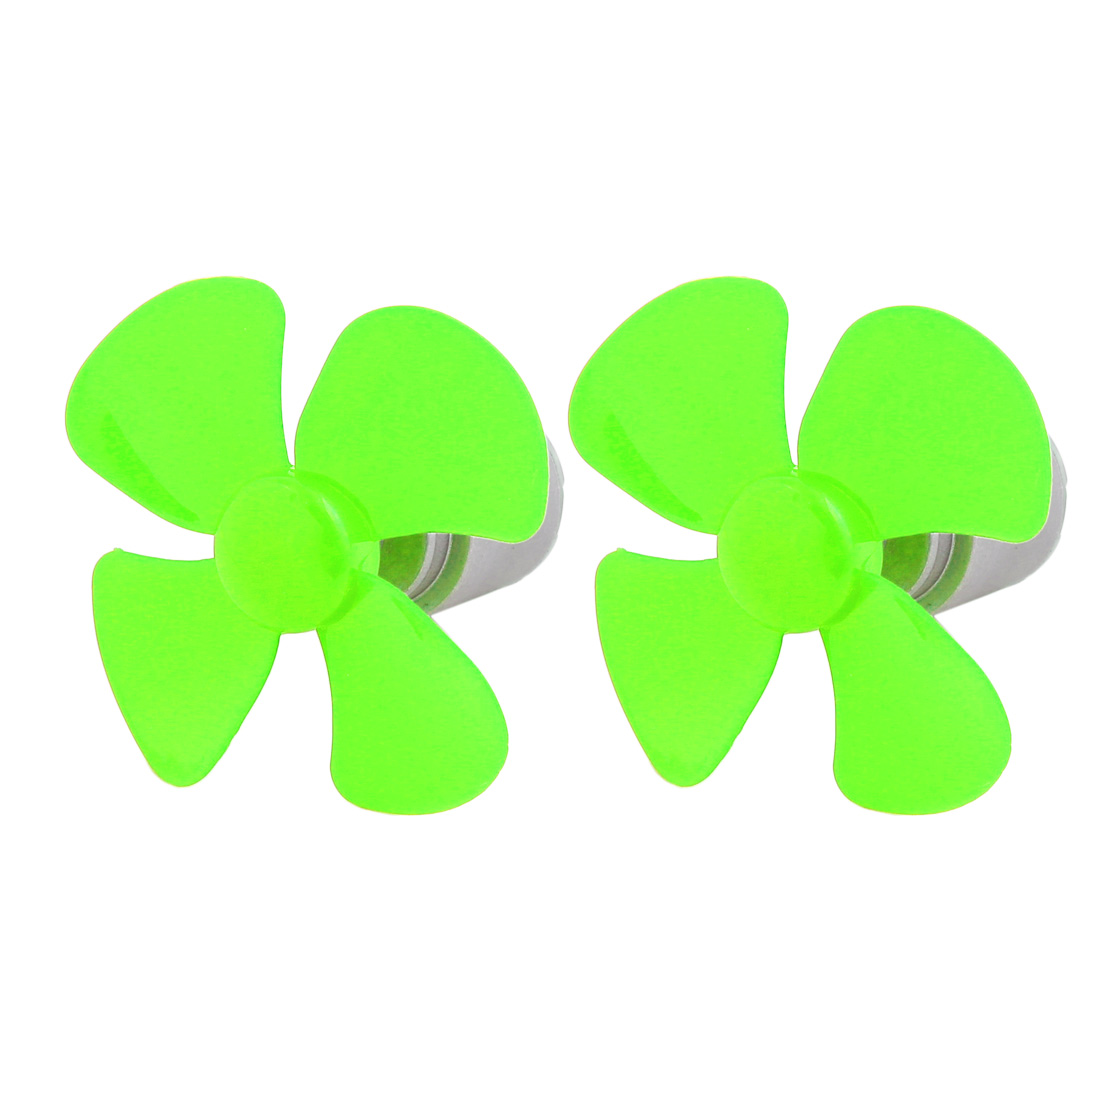 2pcs DC 3V 0.13A 9000RPM Strong Force Motor 4 Blades 56mm Green Propeller for RC Aircraft